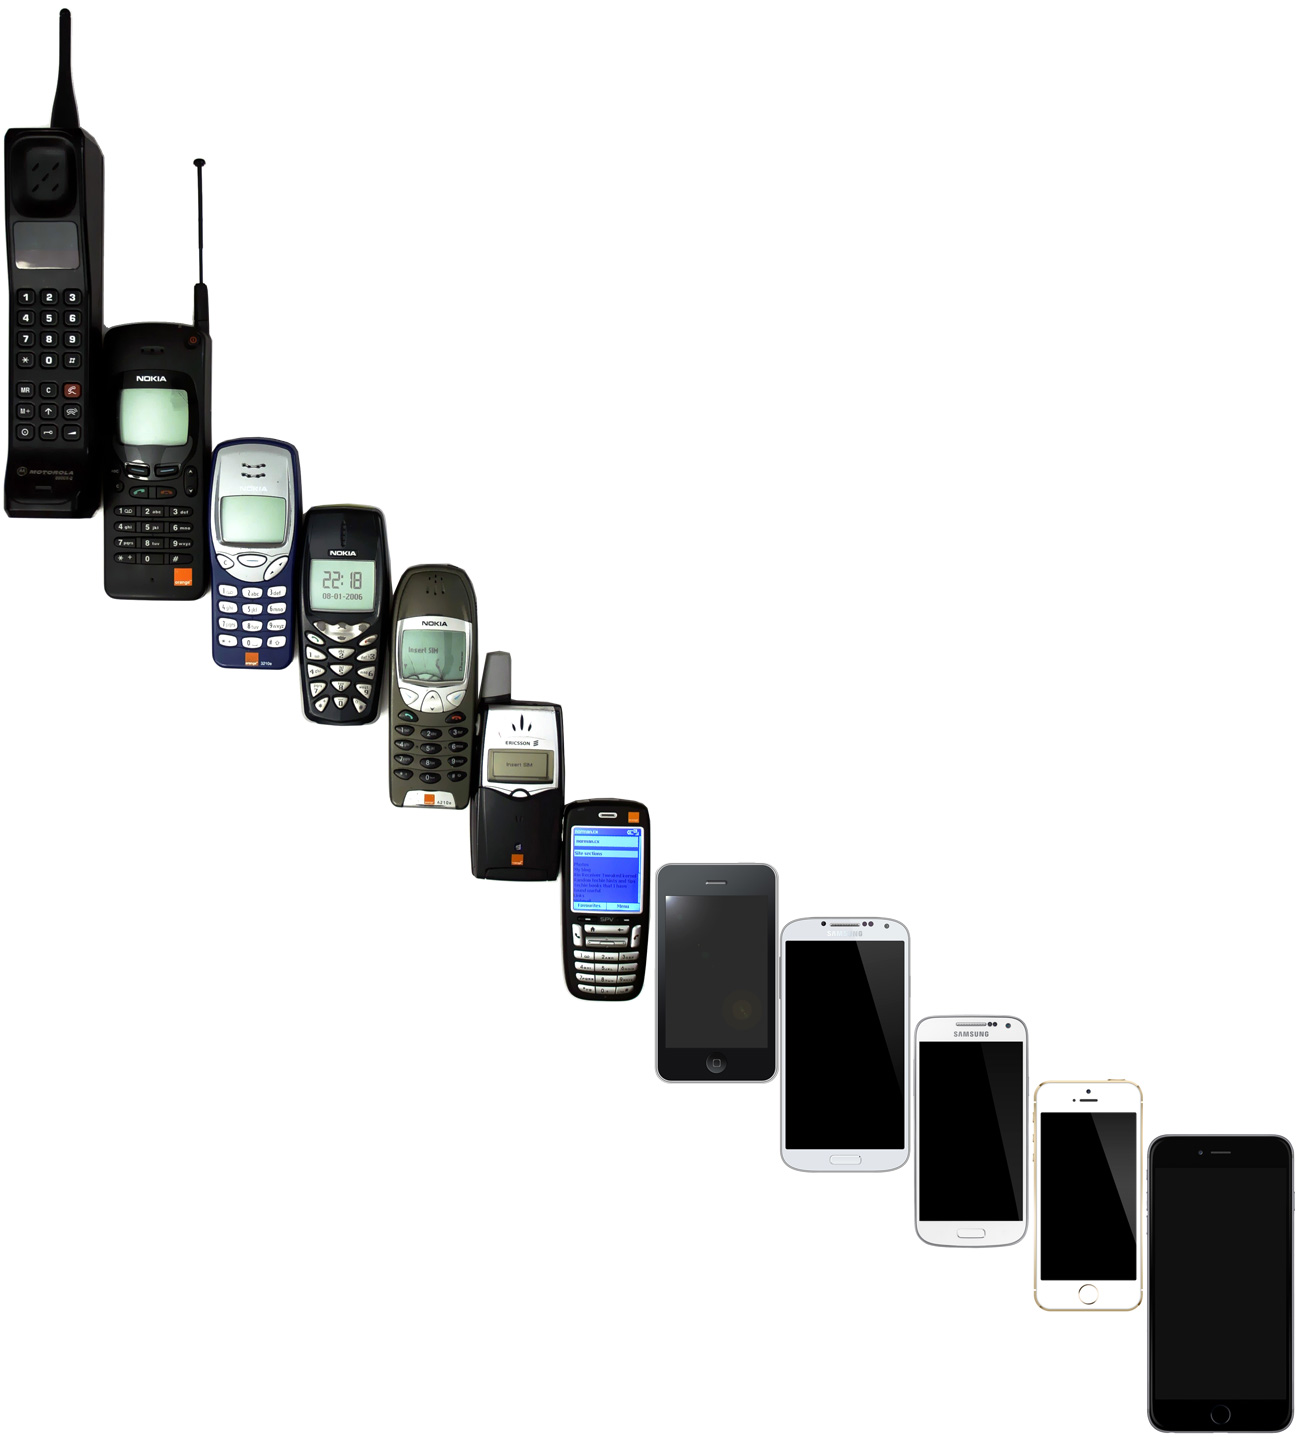 The Mobile Phone - Telecommunication & Mobile Phones